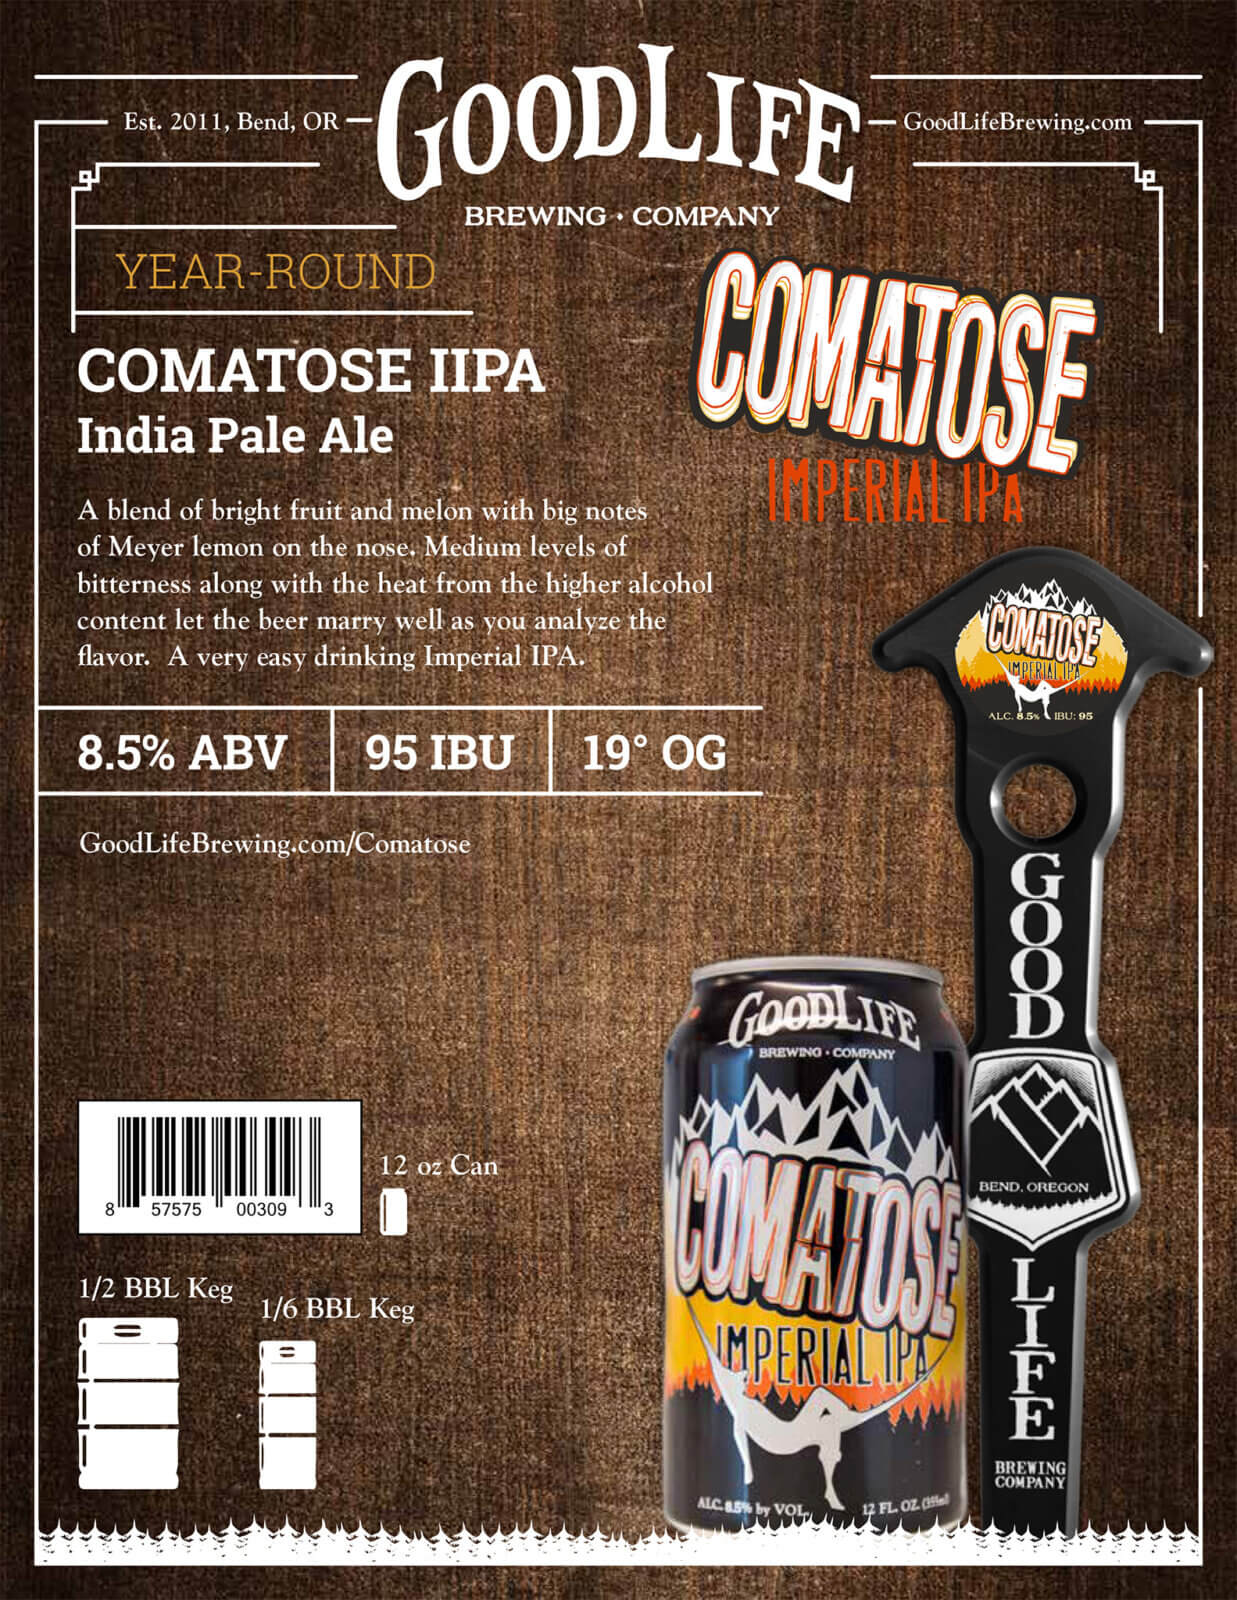 Comatose beer poster design by Crowerks